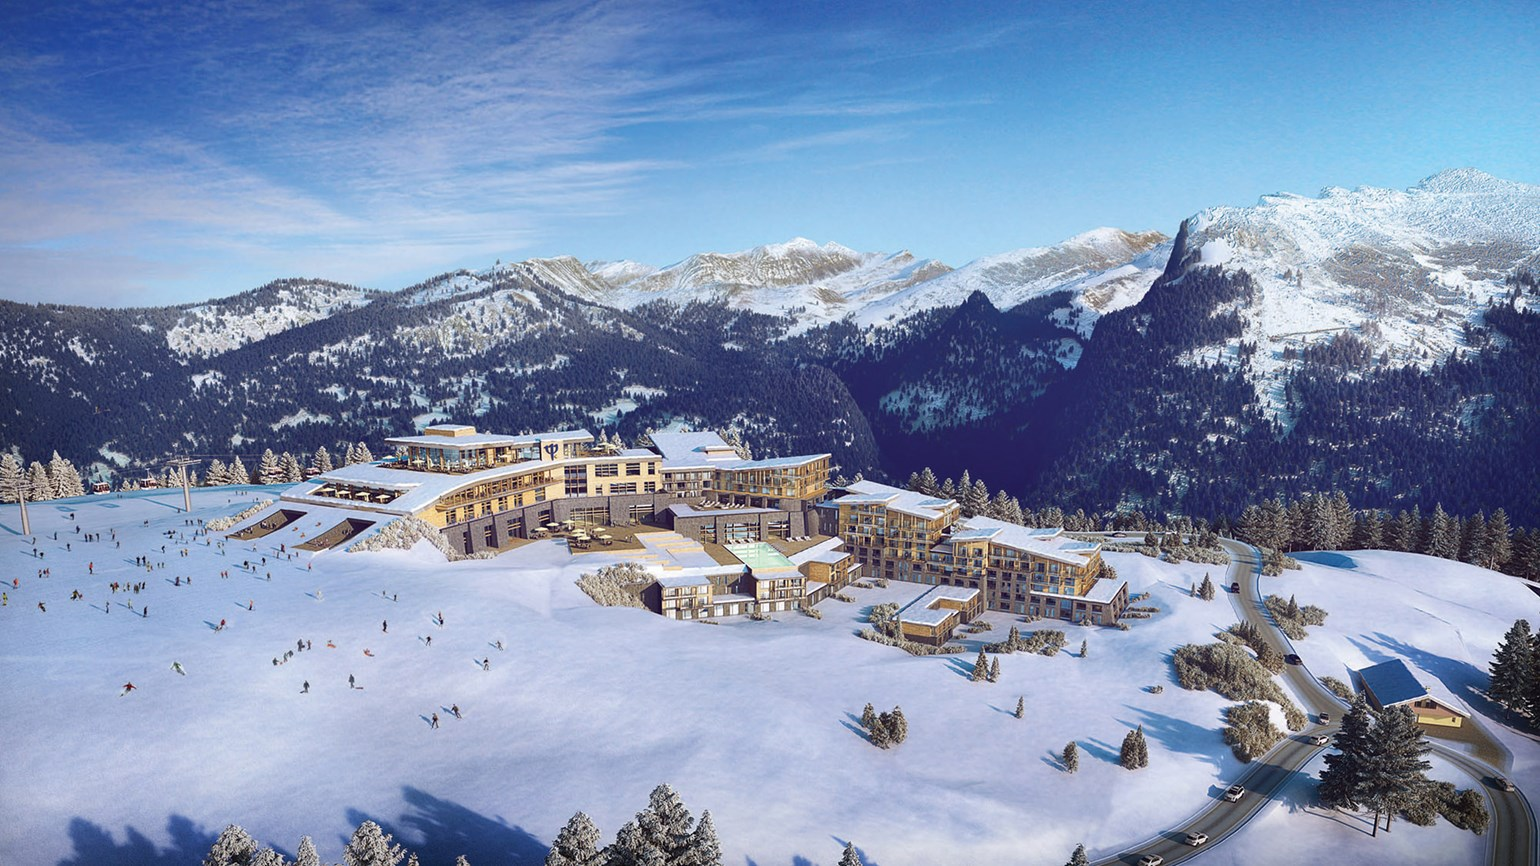 Club Med challenges U.S. ski resorts — and it's not sorry